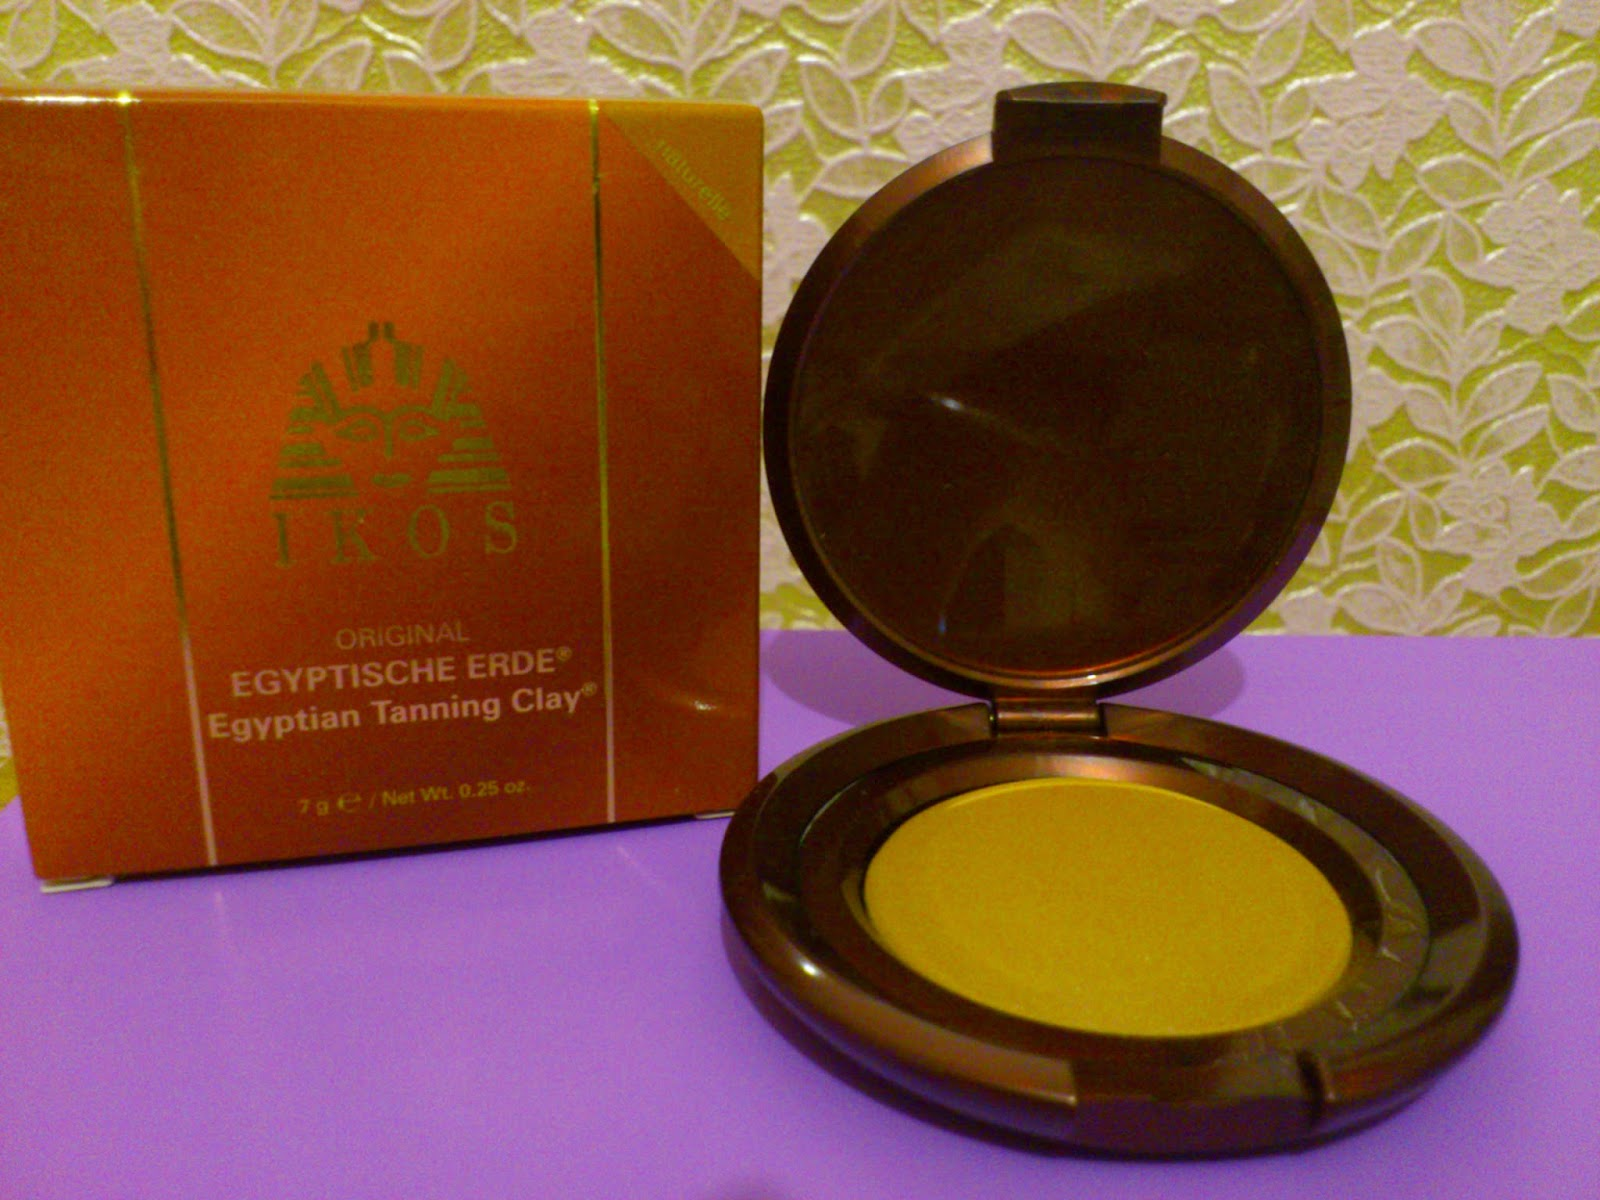 Ikos Egyptian Tanning Clay